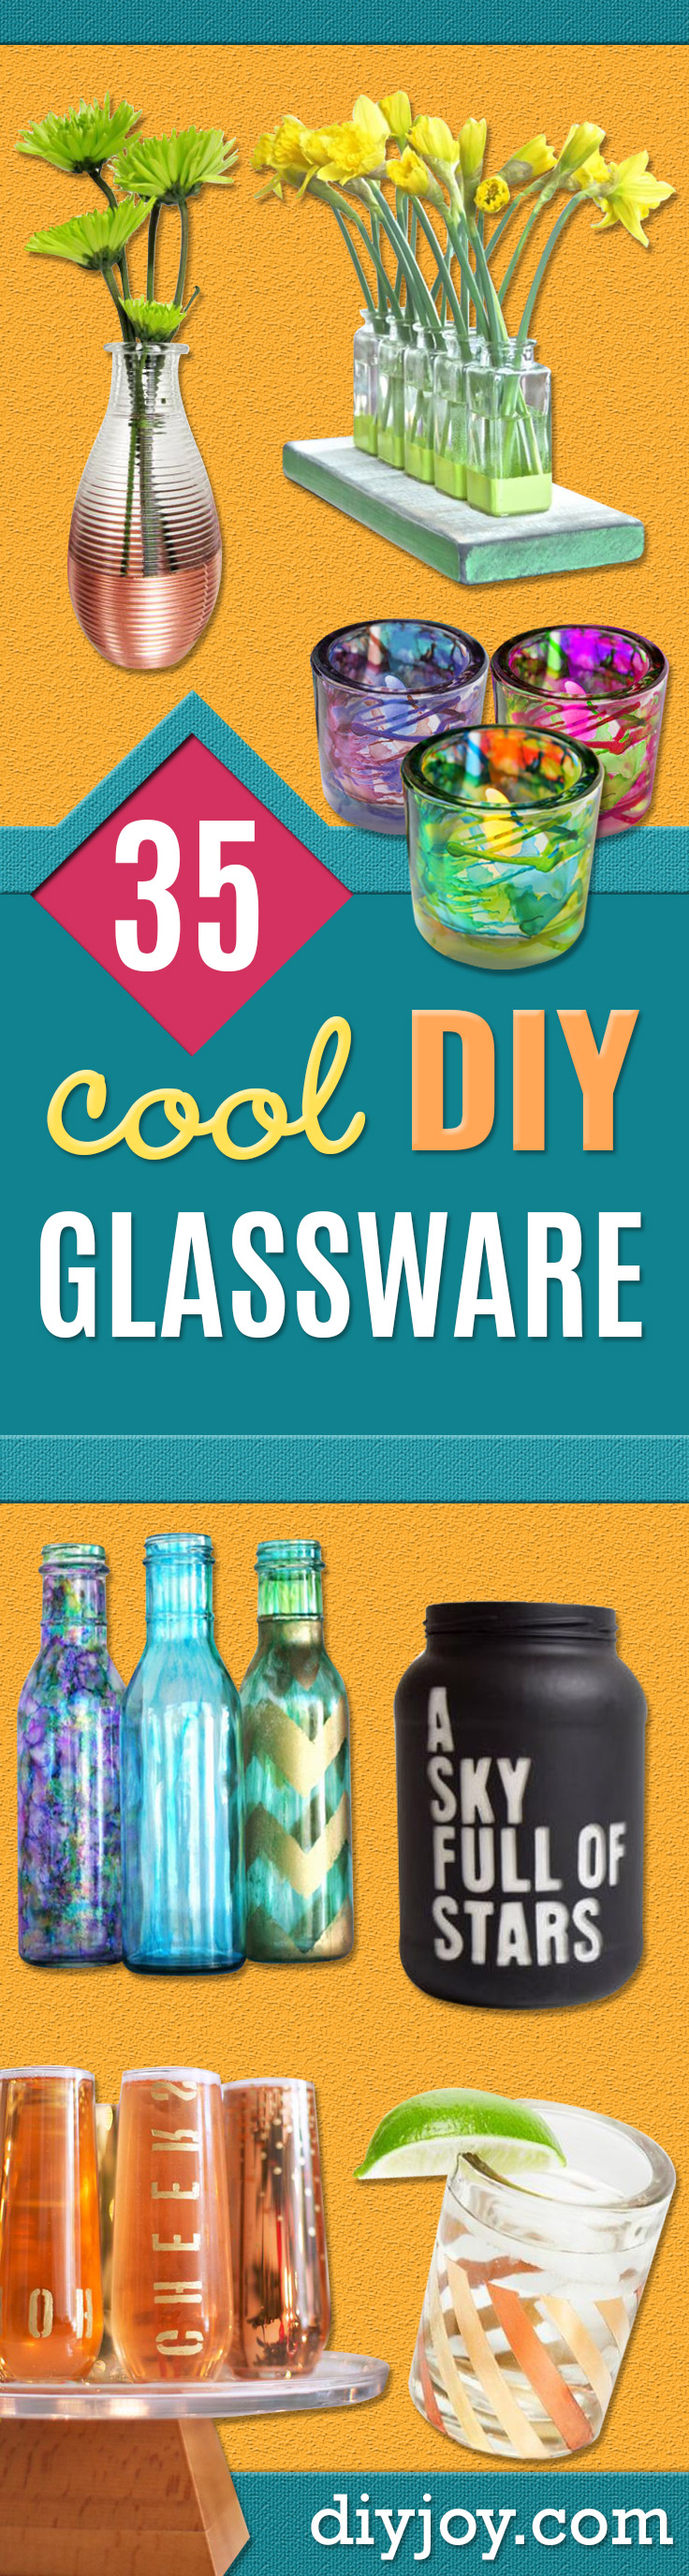 DIY Glassware - Cool Bar and Drink Glasses You Can Make and Decorate for Creative and Unique Serving Glass Ideas - Mugs, Cups, Decanters, Pitchers and Glass Ware Projects - Paint, Etch, Etching Tutorials, Dotted, Sharpie Art and Dishwasher Safe Decorating Tips - Easy DIY Gift Ideas for Him and Her - Handmade Home Decor DIY http://diyjoy.com/diy-glassware